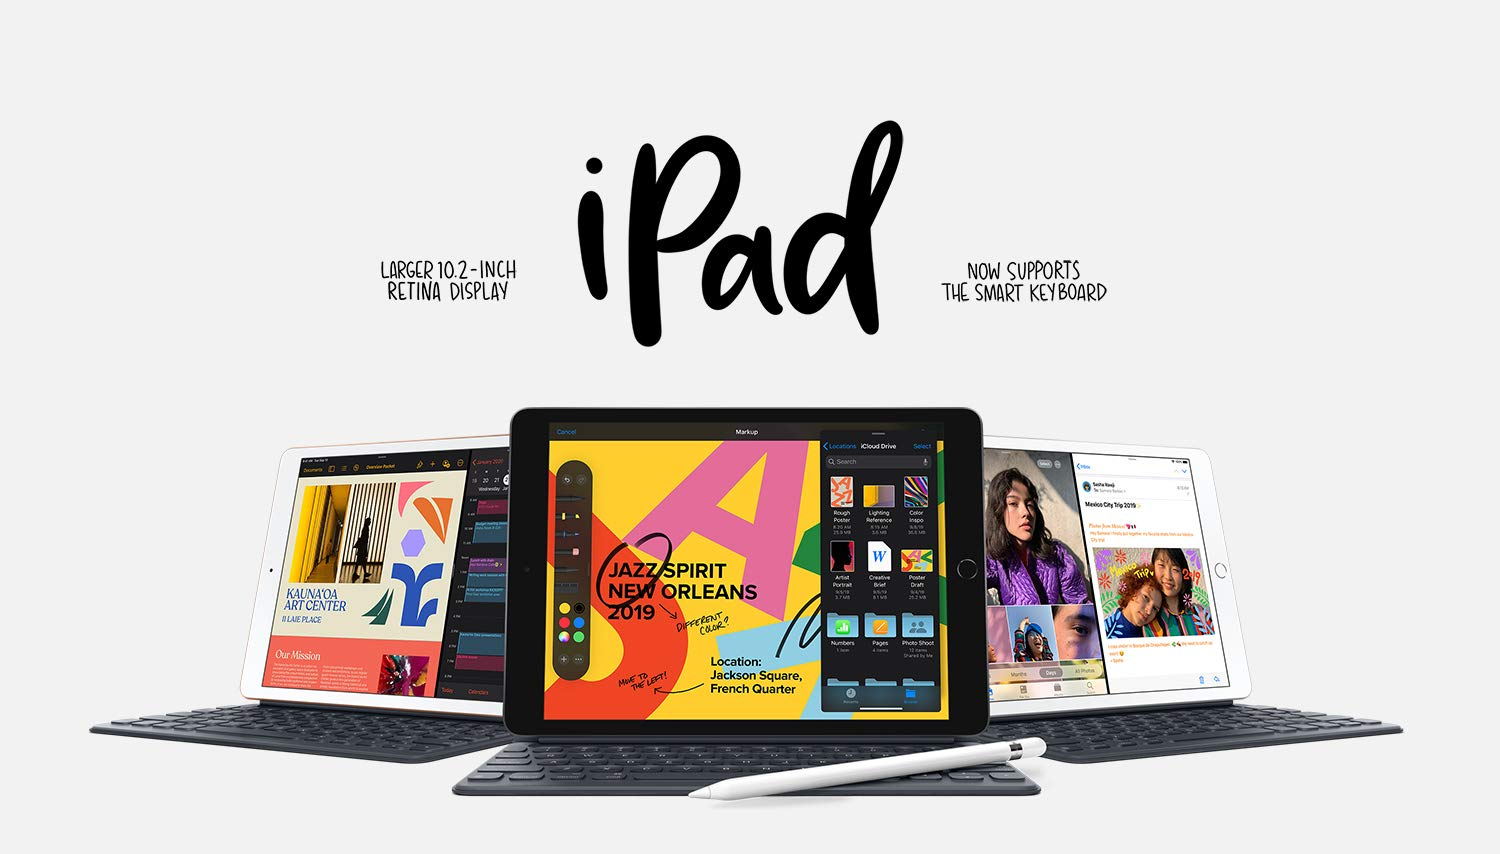 iPad   Larger 10.2-inch Retina Display    Now supports the Smart Keyboard